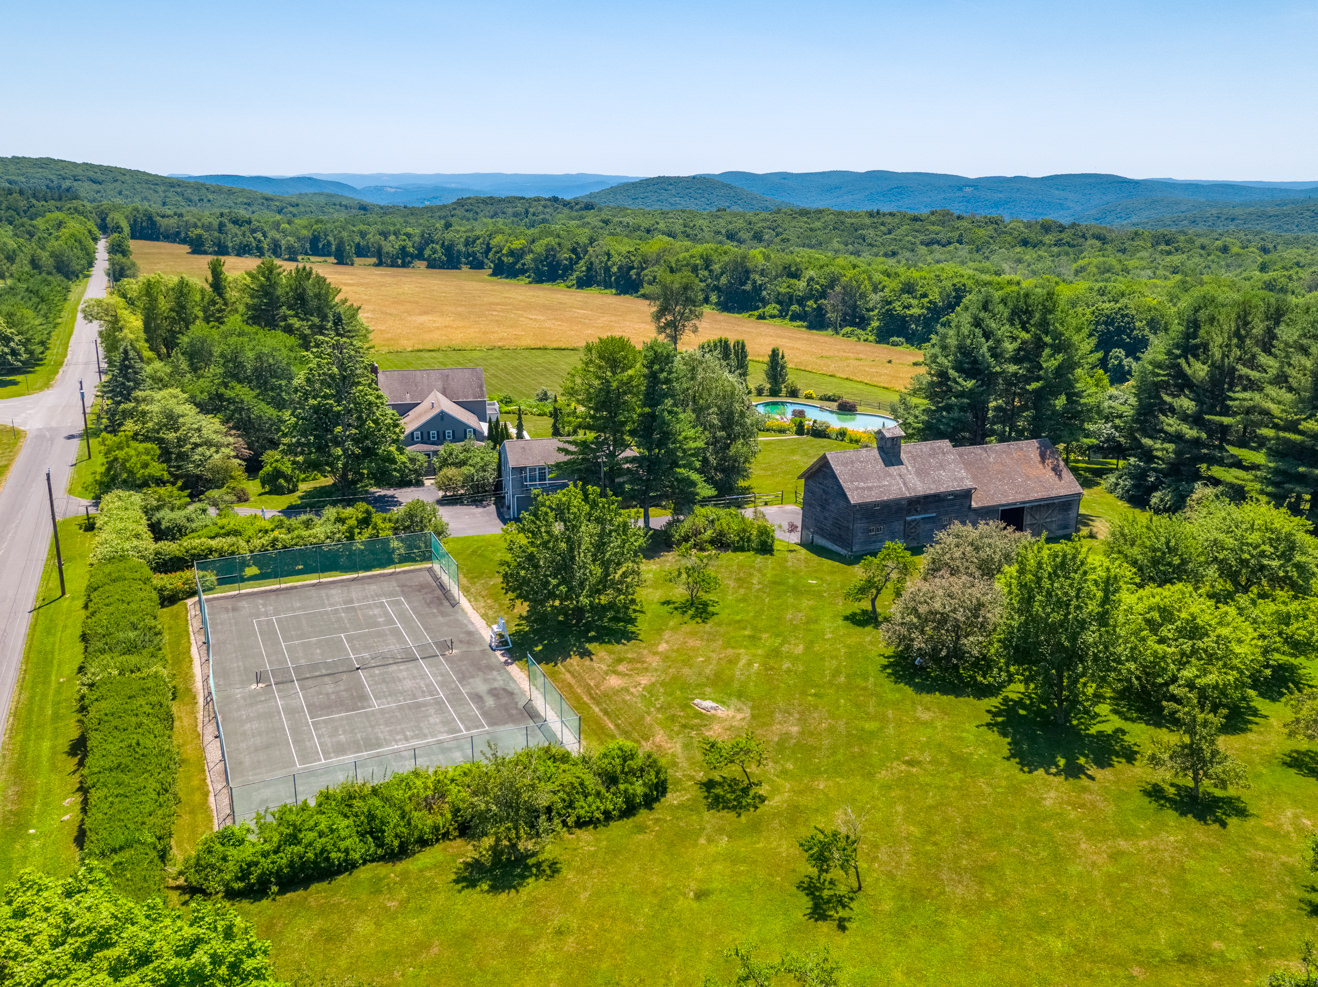 Real Estate drone photography in Connecticut, Massachusetts, New York. Photoflight Aerial Media